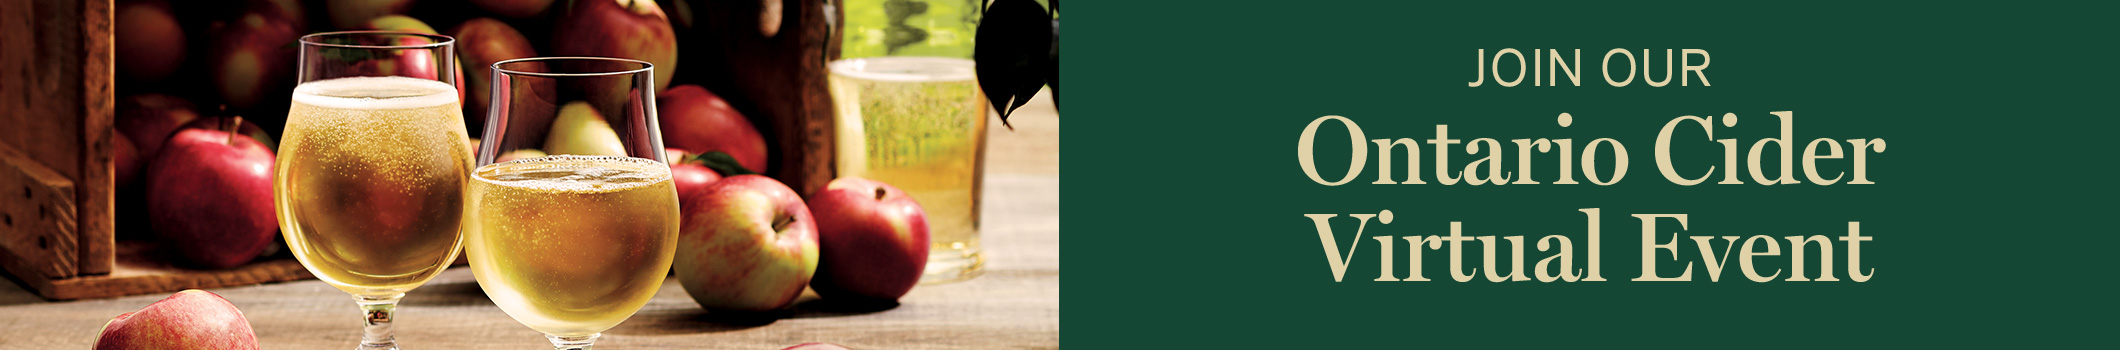 Join our Ontario Cider Virtual Event